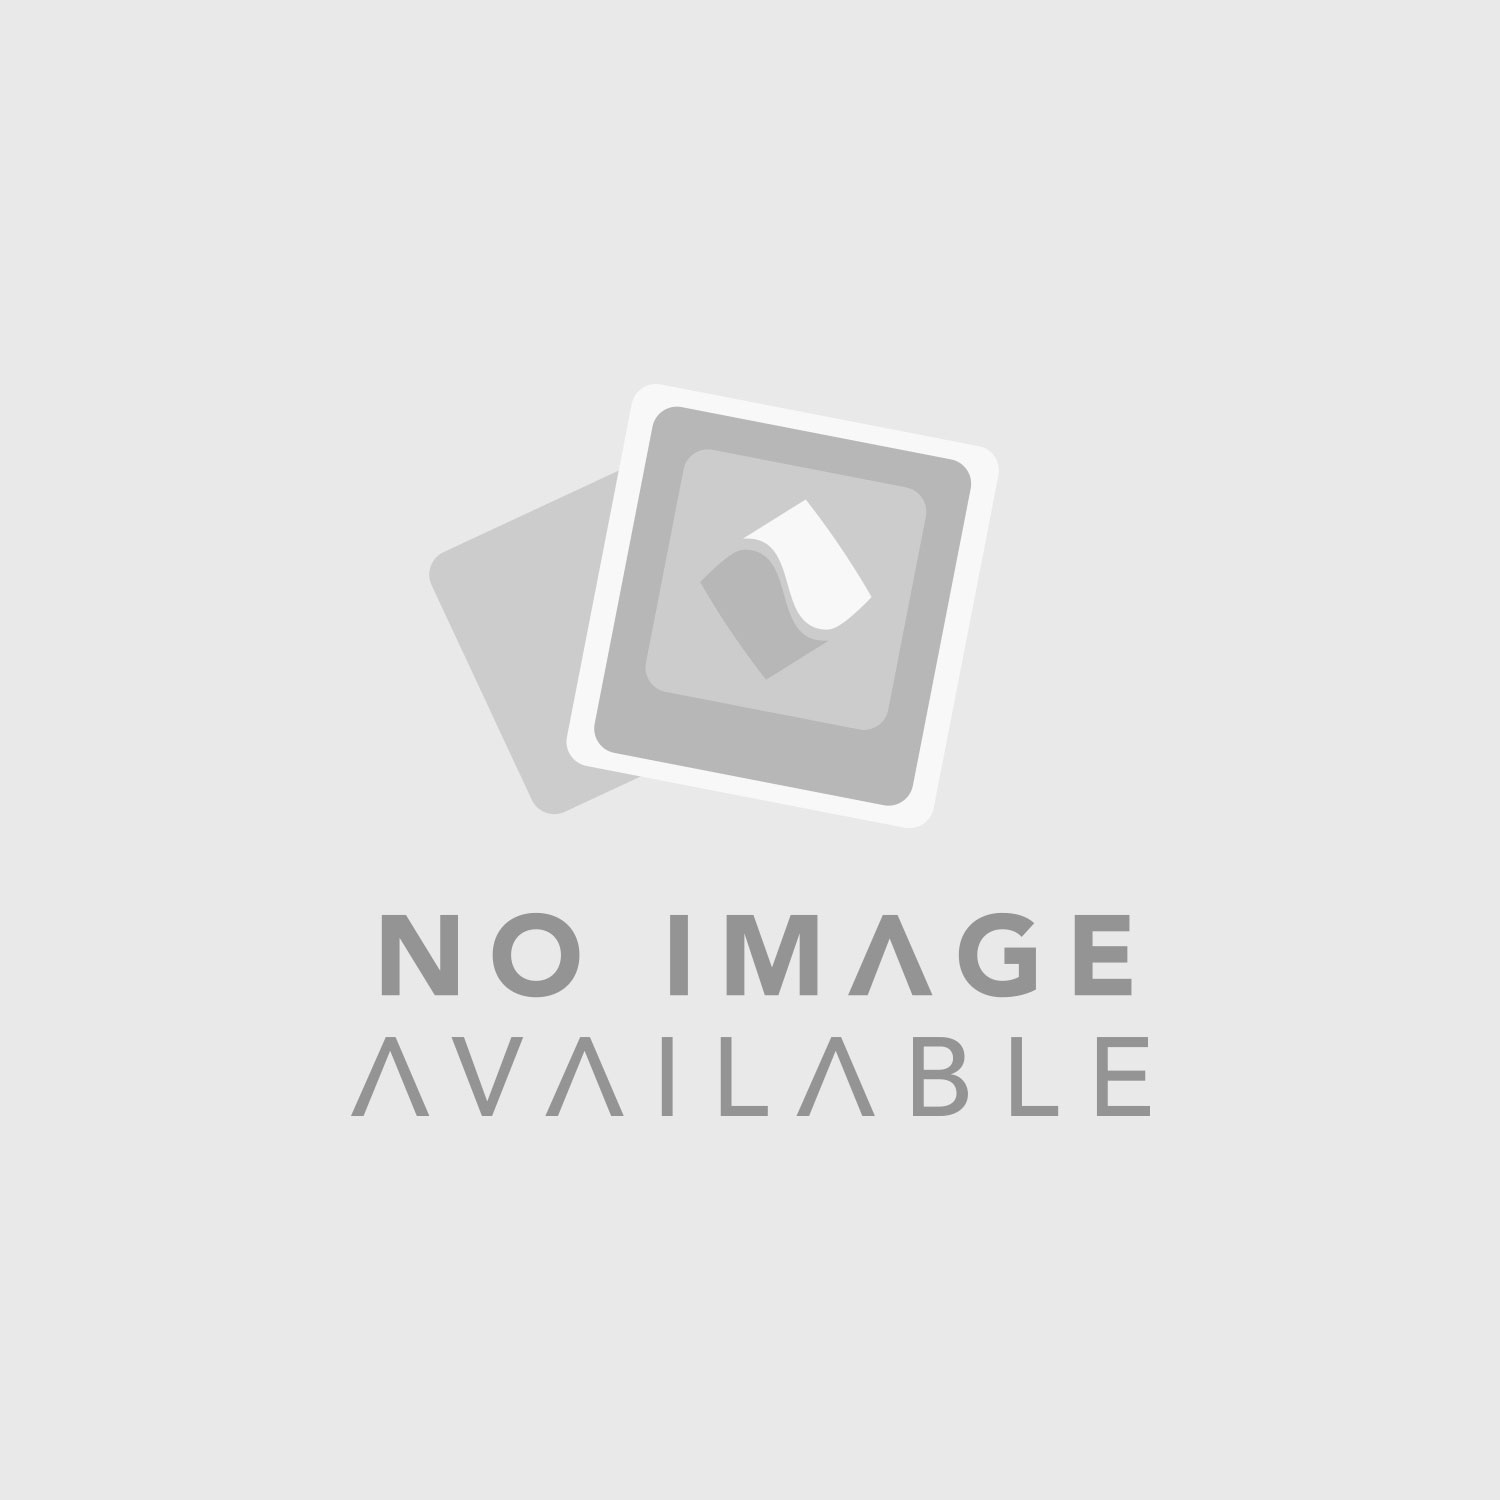 Pictured with 4 Dual Headsets